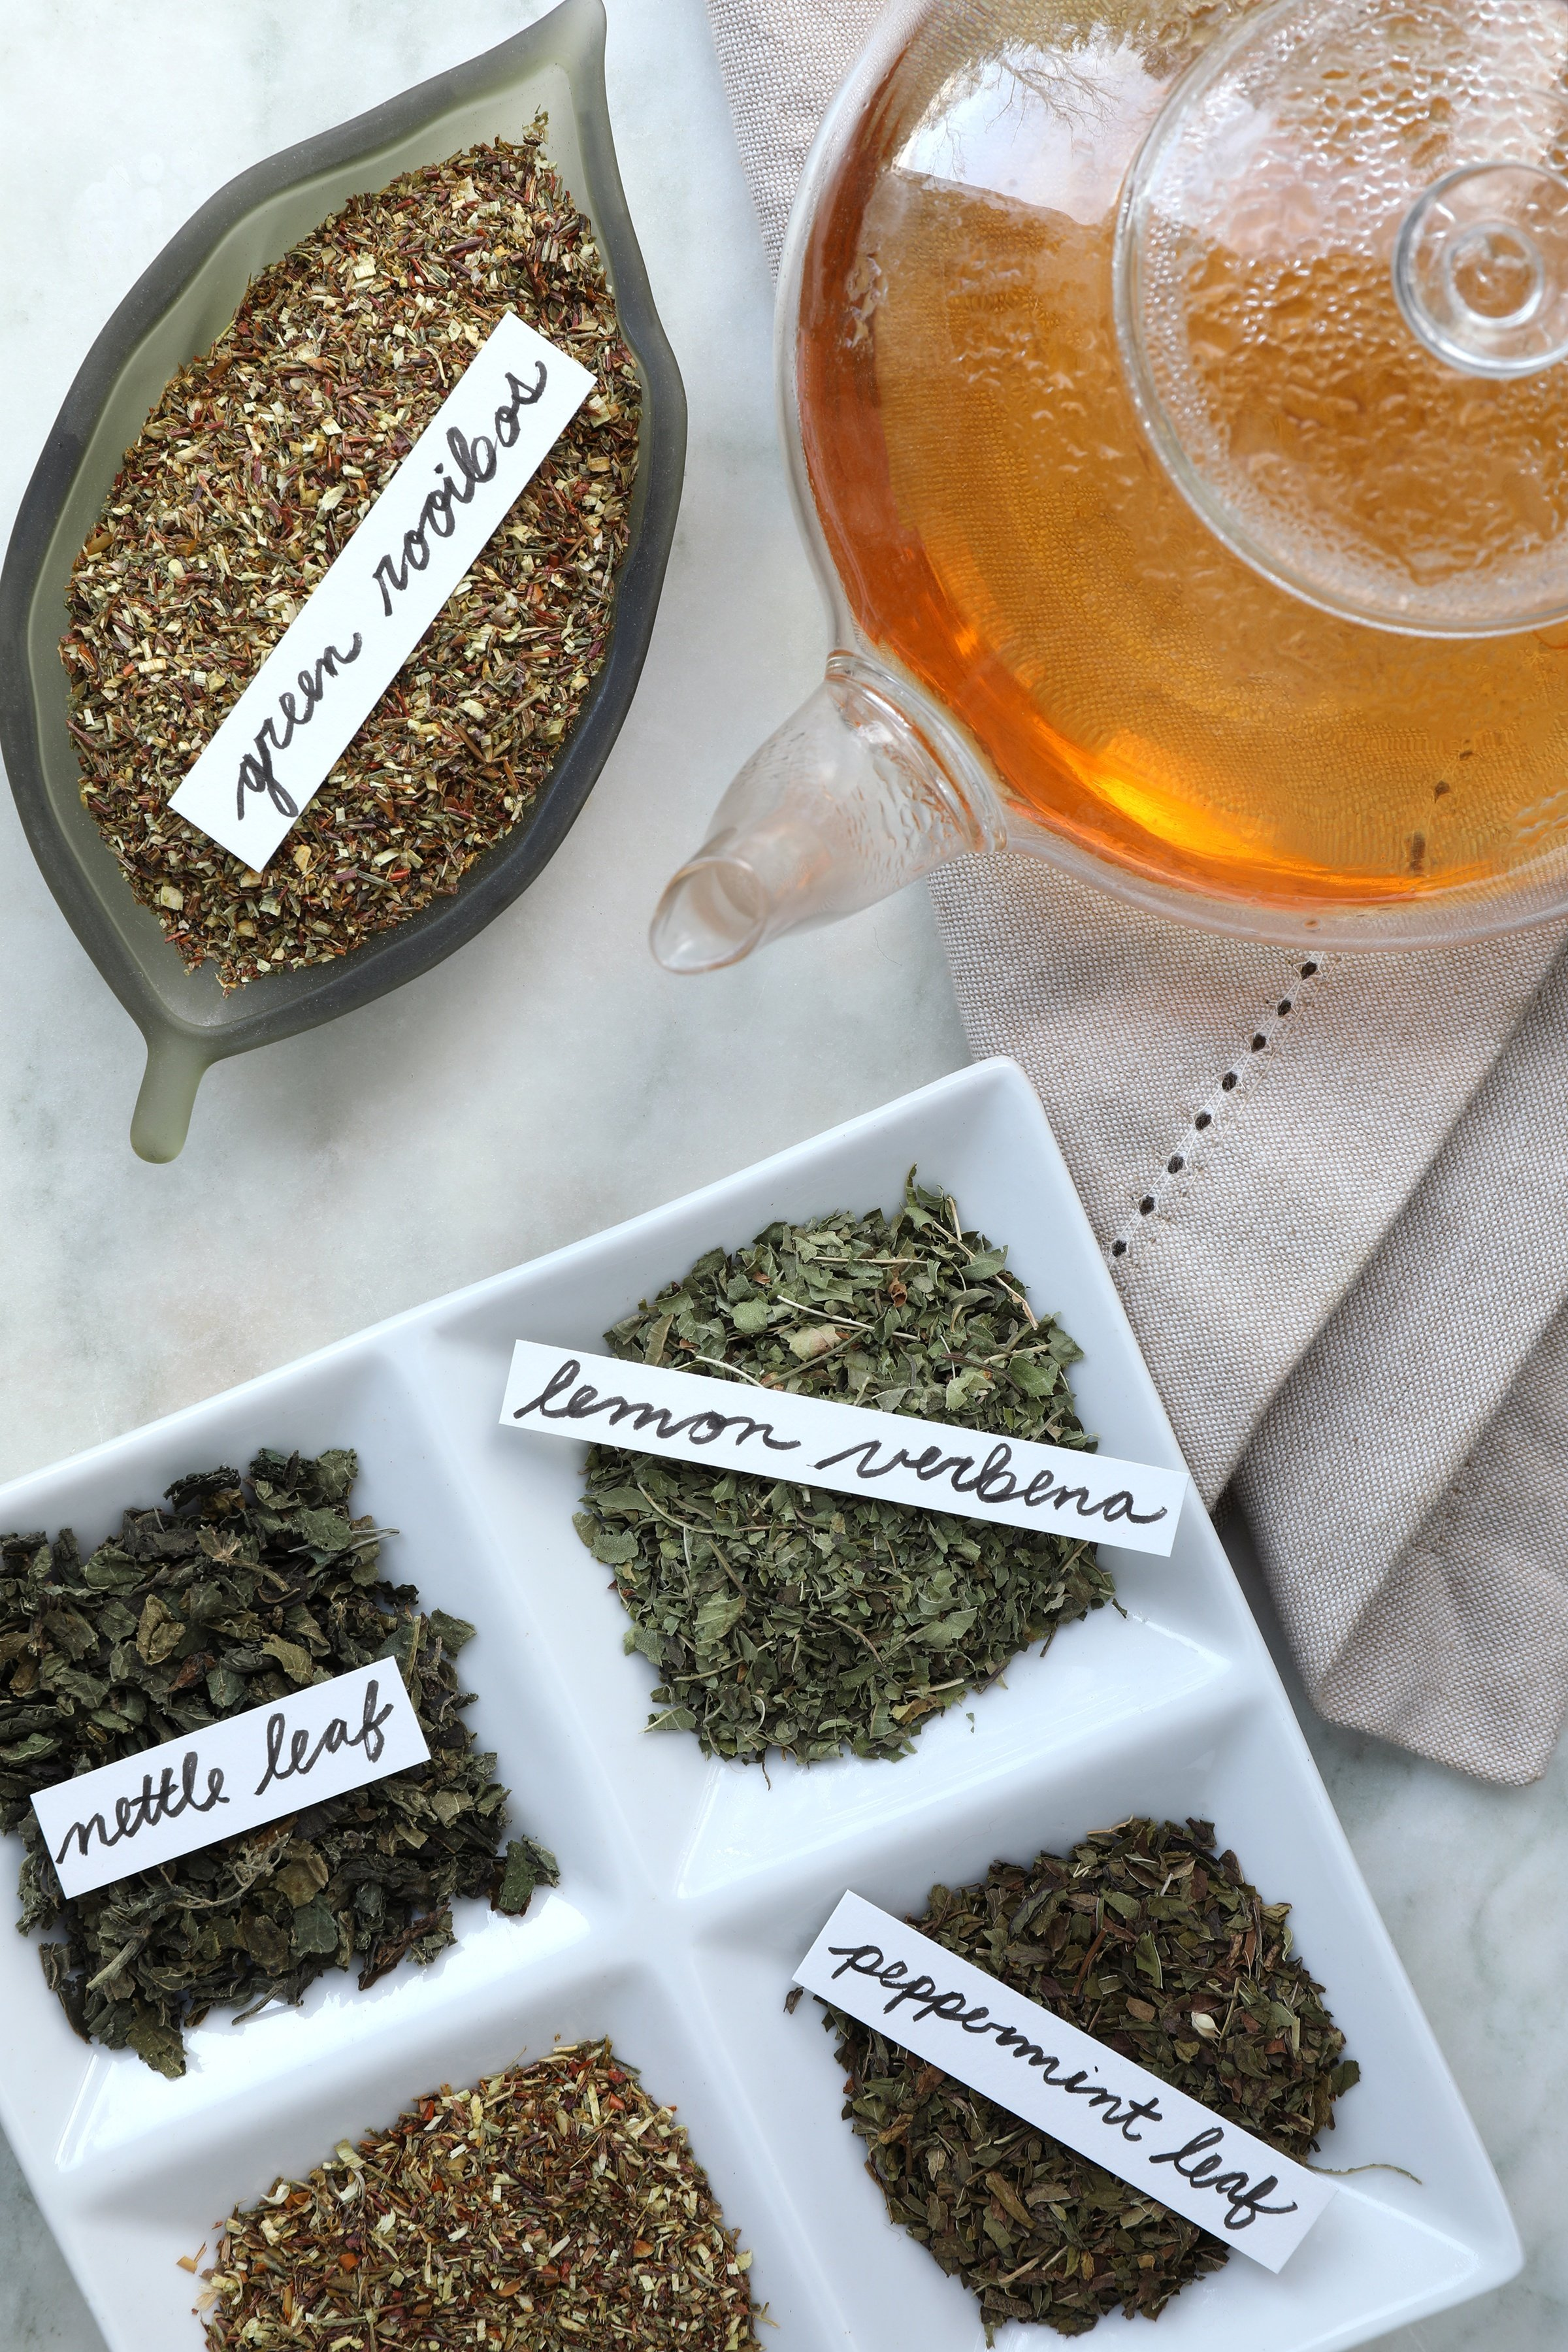 Green rooibos tea with glass tea pot with brewed rooibos tea and herbs nearby